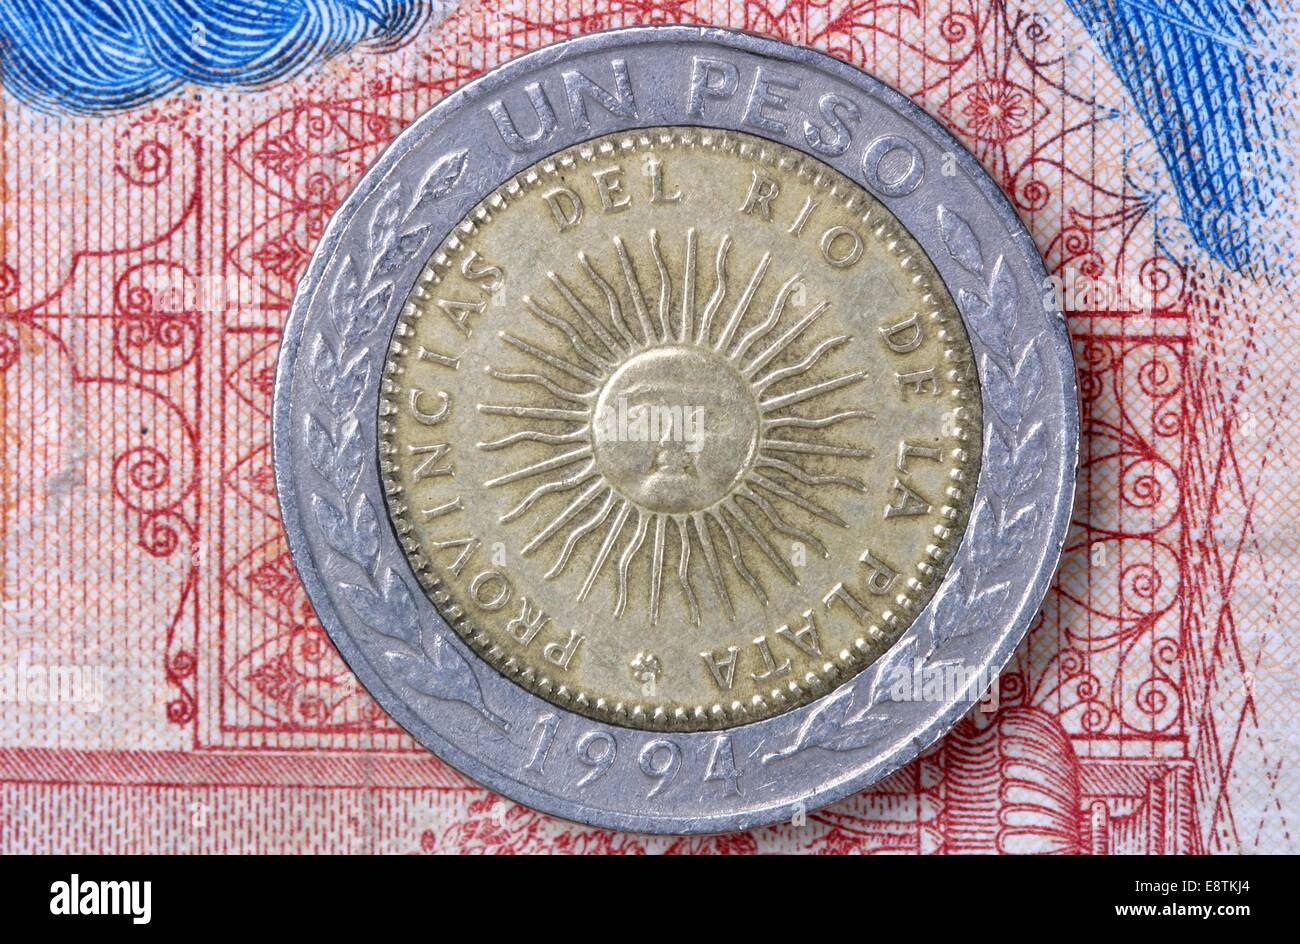 Reverse side of the Argentine 1 peso coin depicting the national emblem the Sun of May - Stock Image